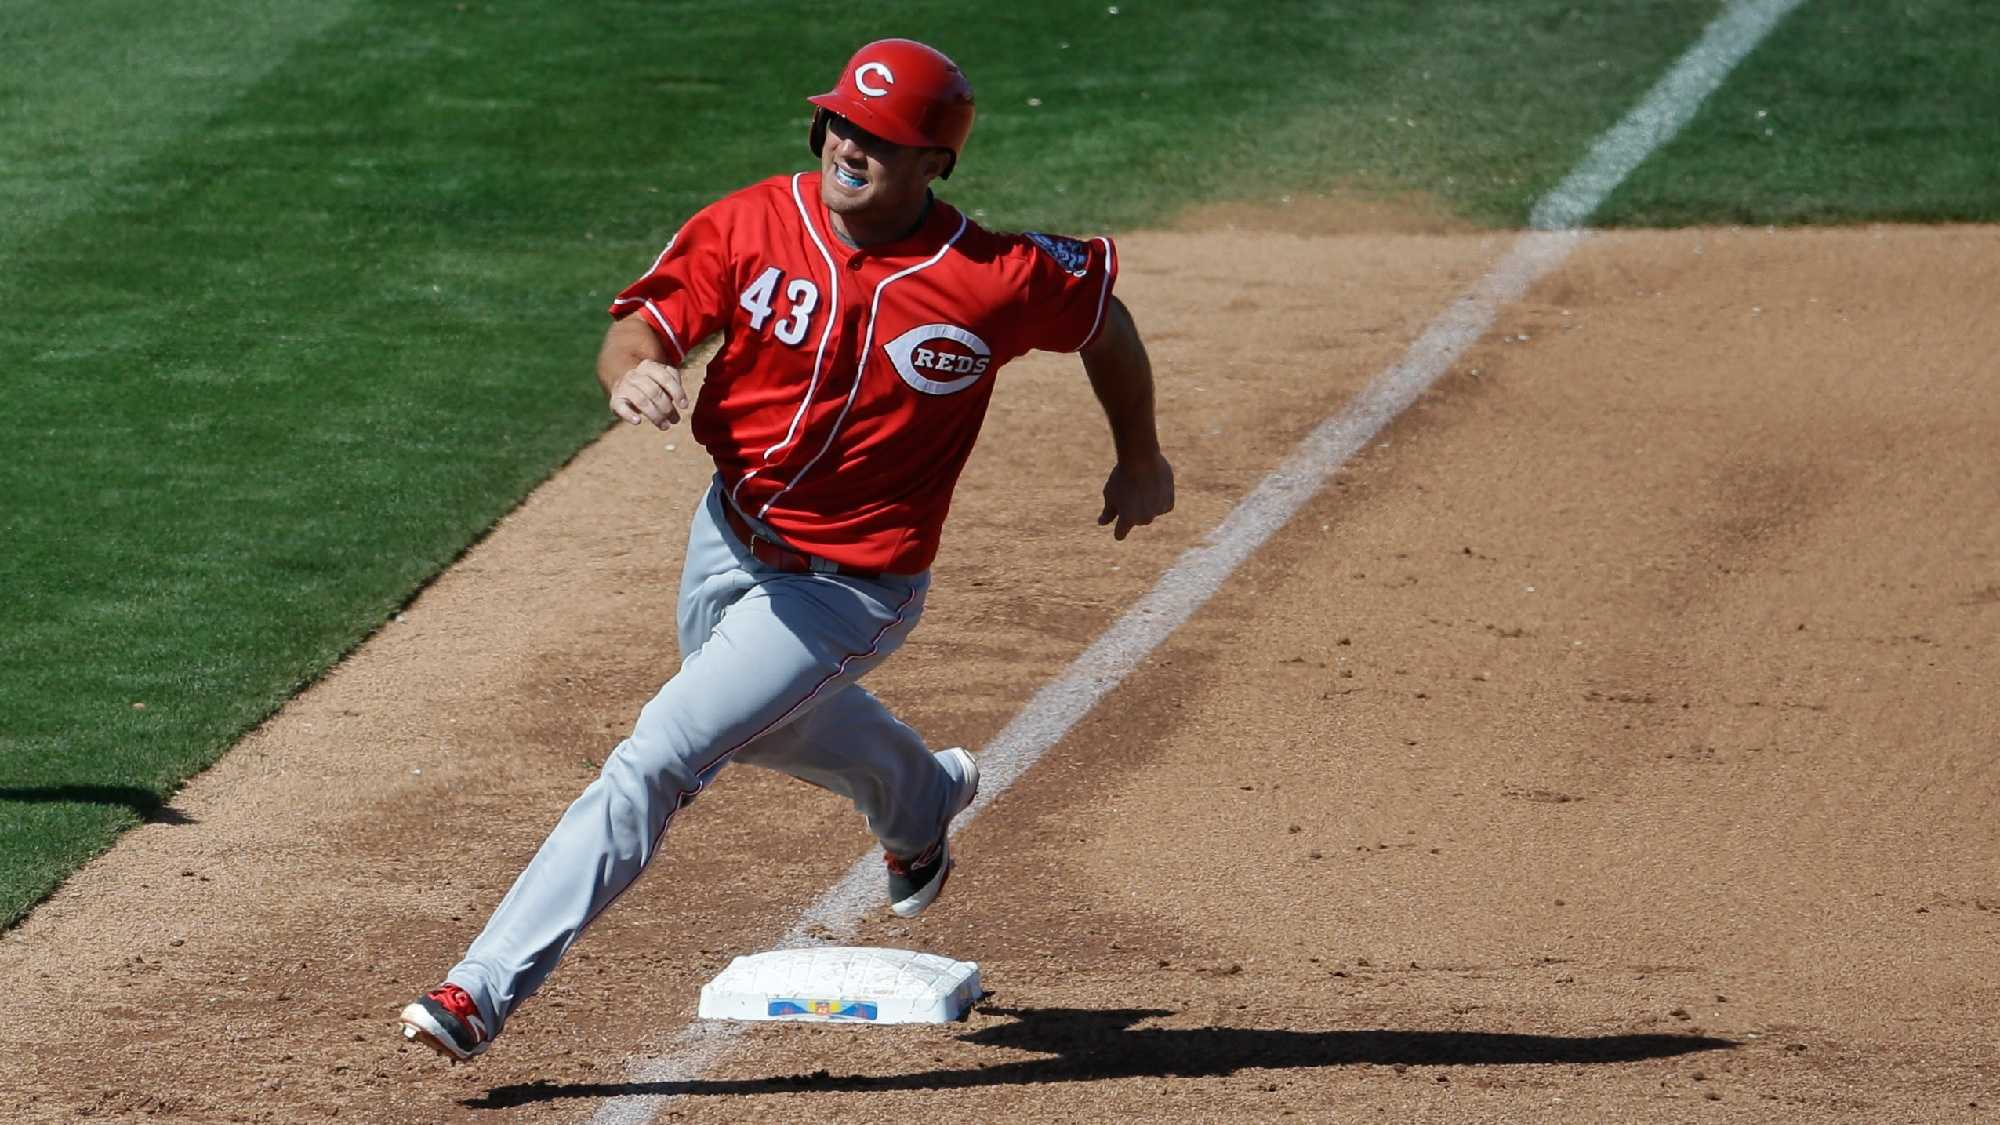 Cincinnati Reds' Scott Schebler in action during a spring training baseball game against the Seattle Mariners on Sunday, March 13, 2016, in Peoria, Ariz.